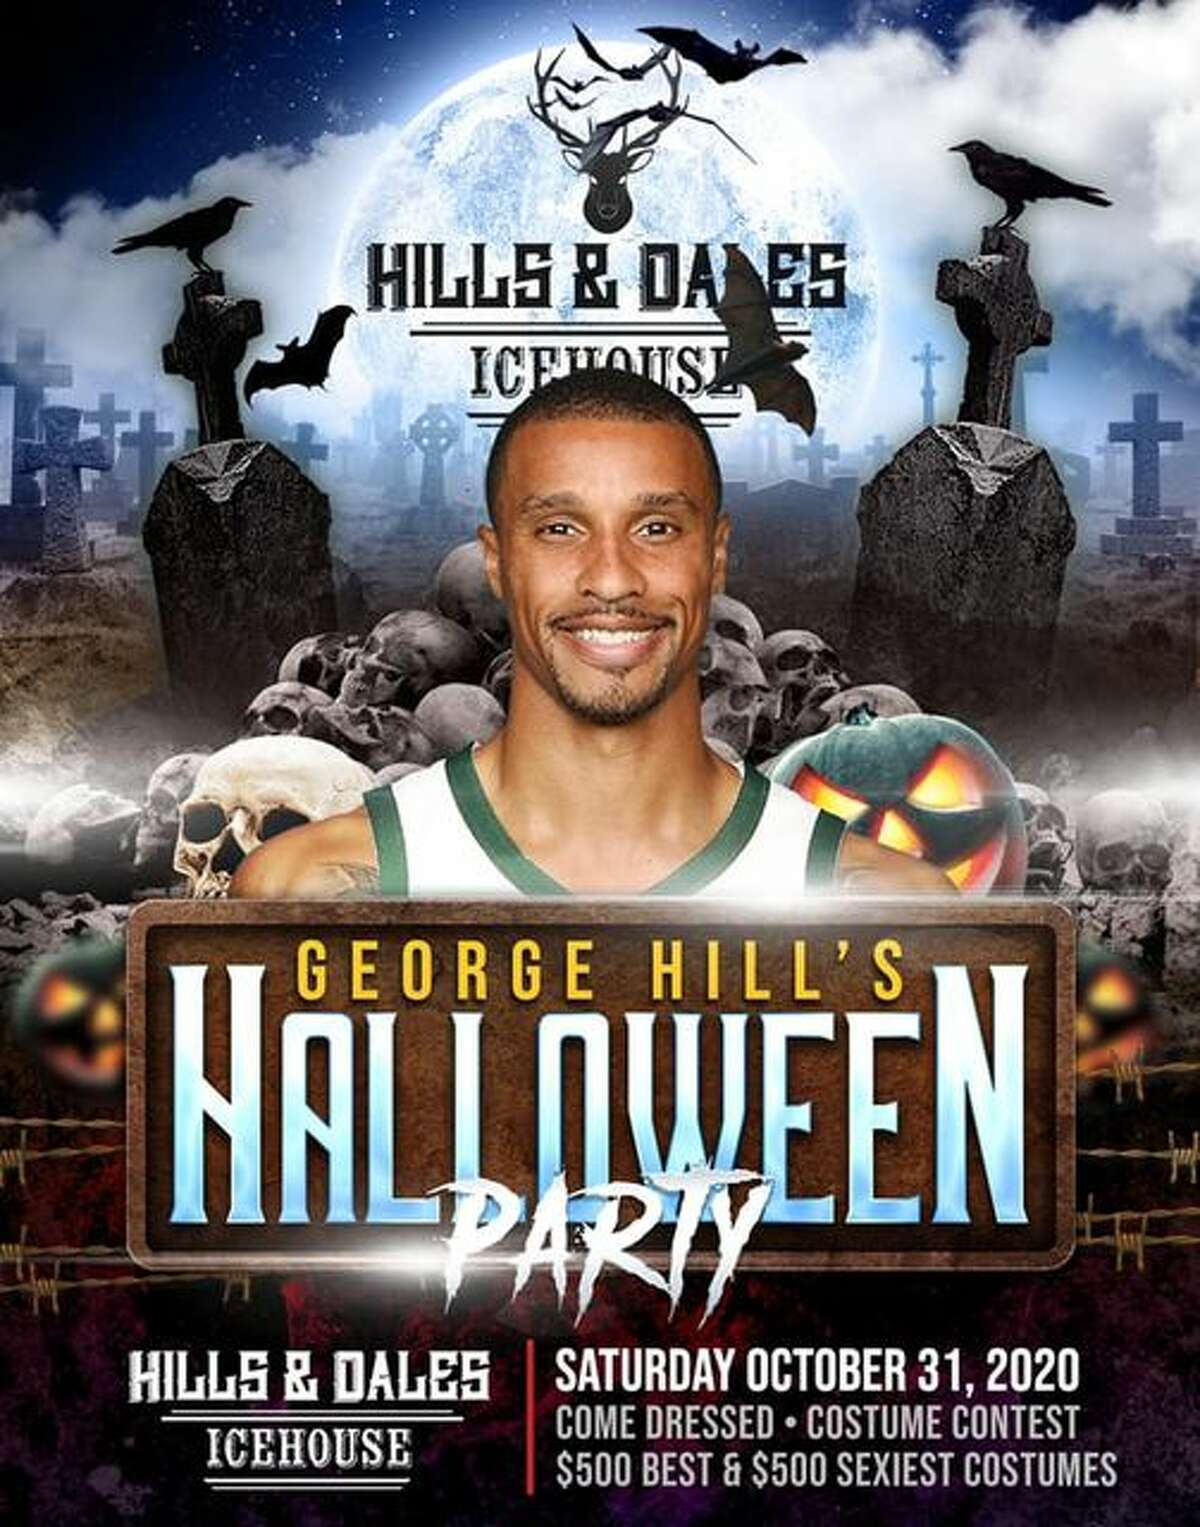 Two Hills will combine later this month when former Spur George Hill throws his Halloween party at Hills and Dales.